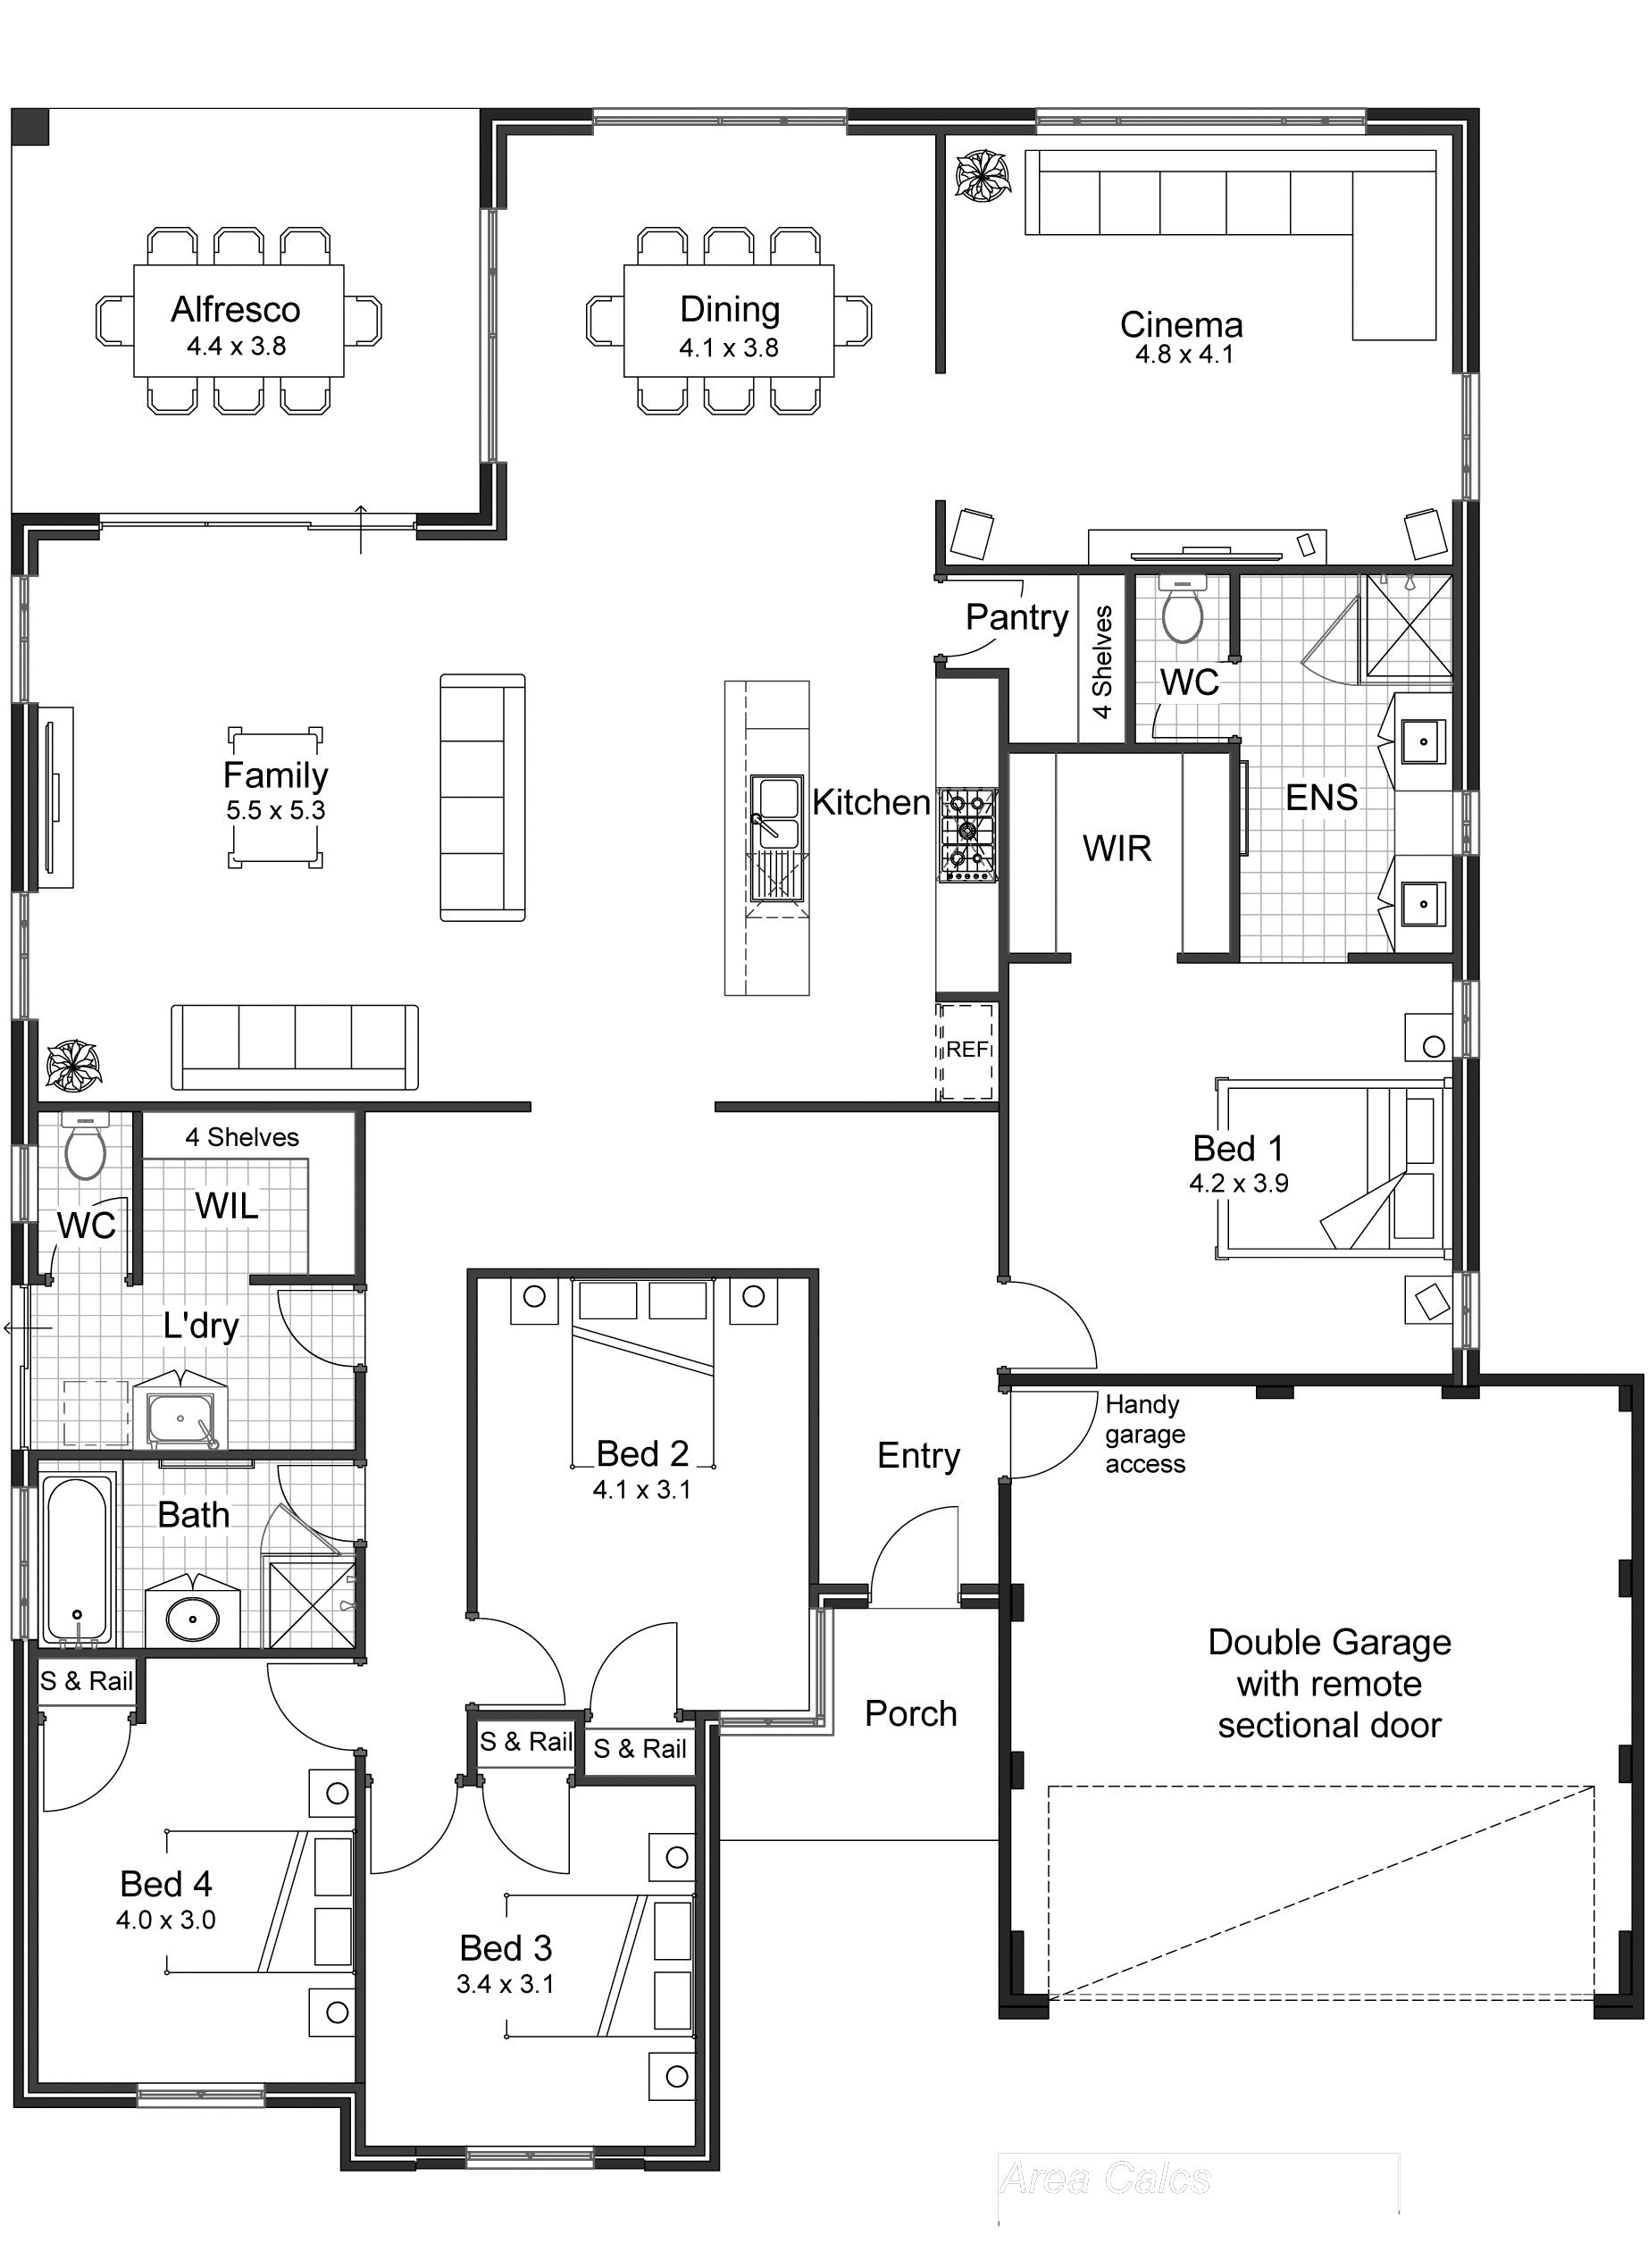 Creative open floor plans homes inspirational home for New floor design ideas